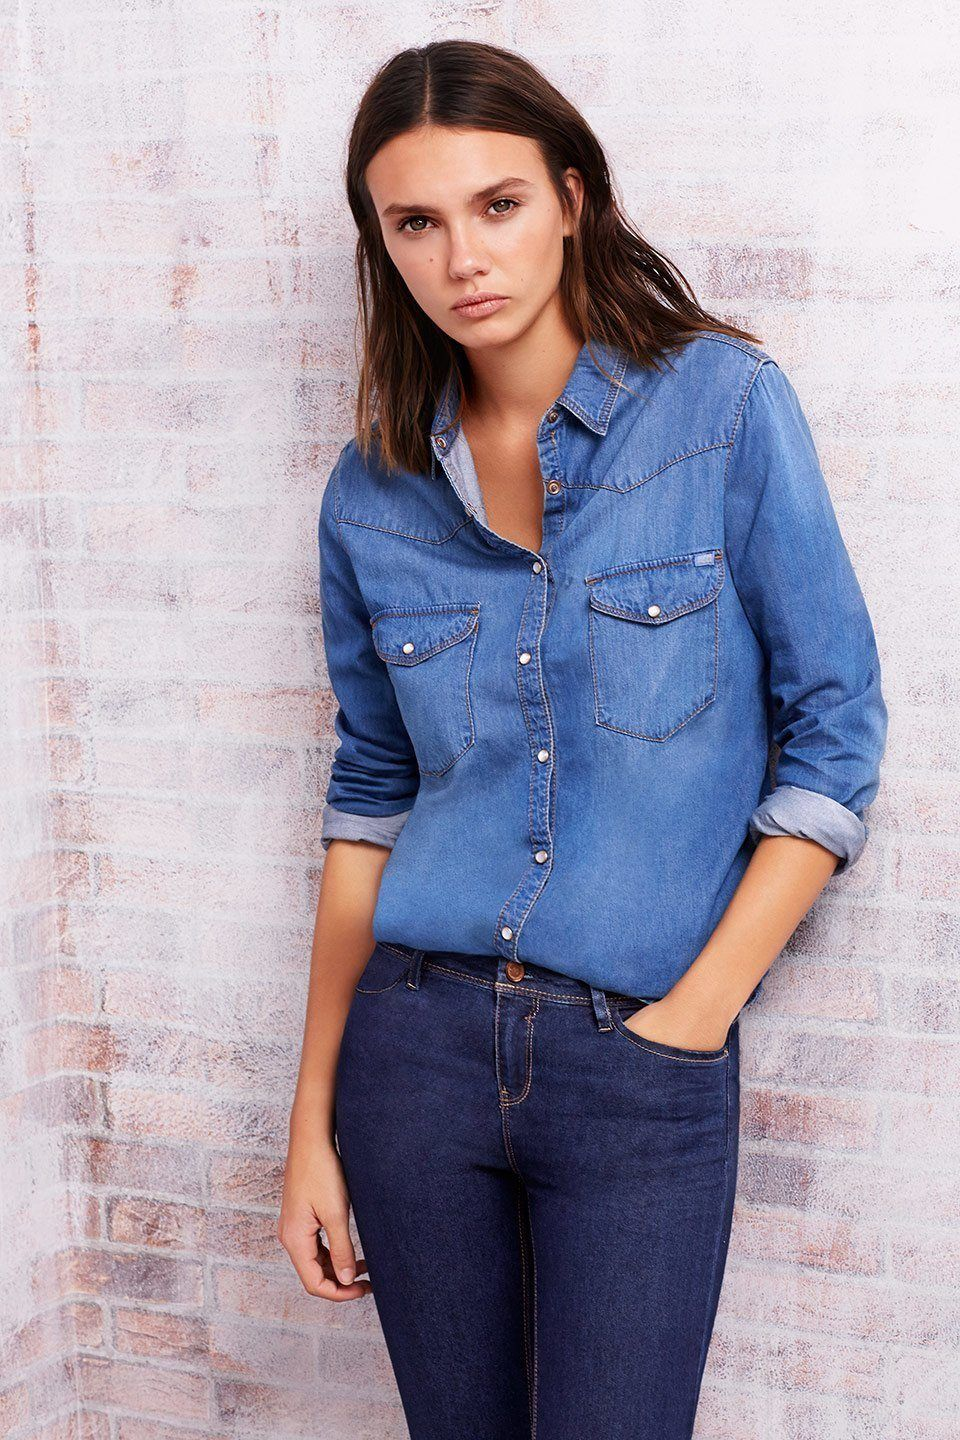 catalogo-lefties-zara-otono-invierno-2014-2015-moda-denim-camisa-tejana